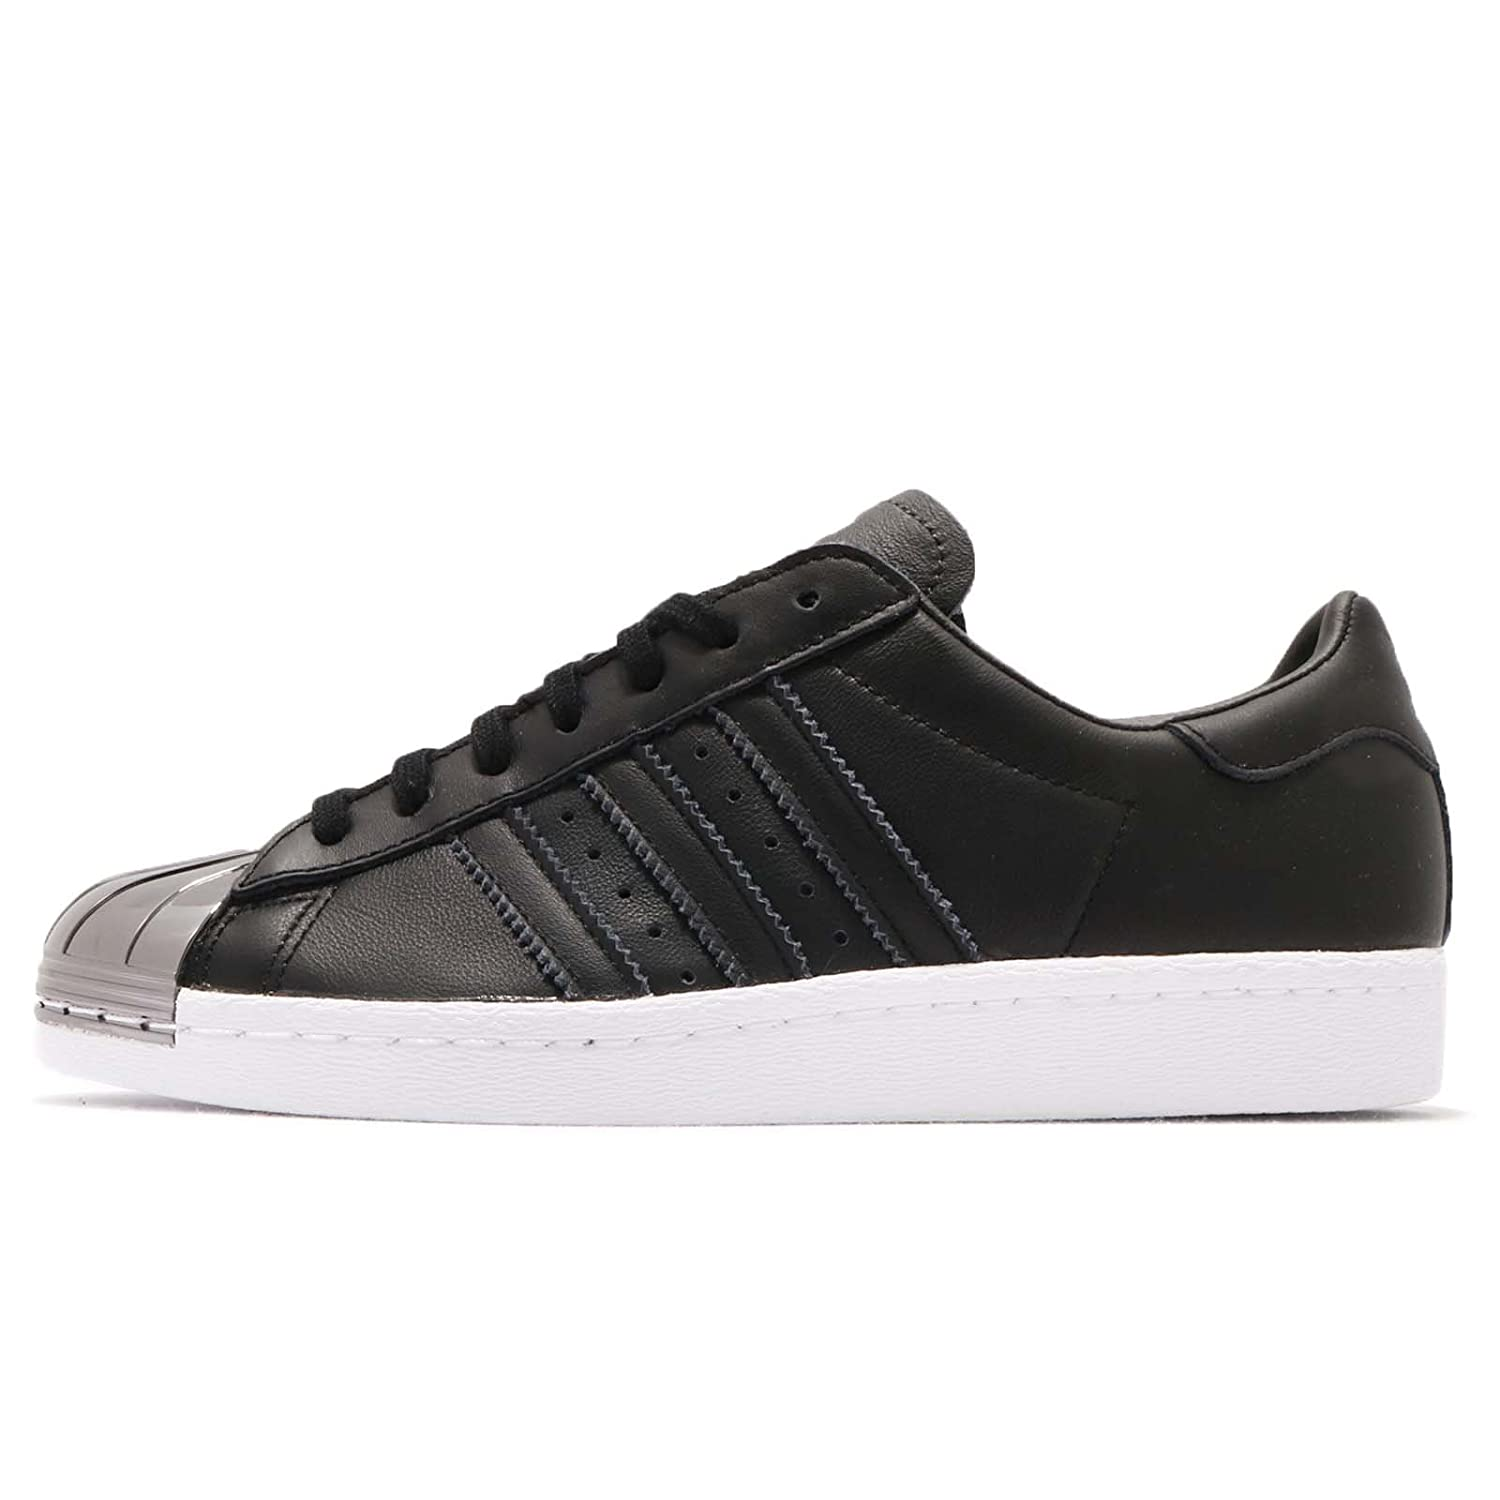 Metal Toe Footwear Adidas Superstar 5 Black Trainers Women's Us6 80s Originals Core QCshdtr